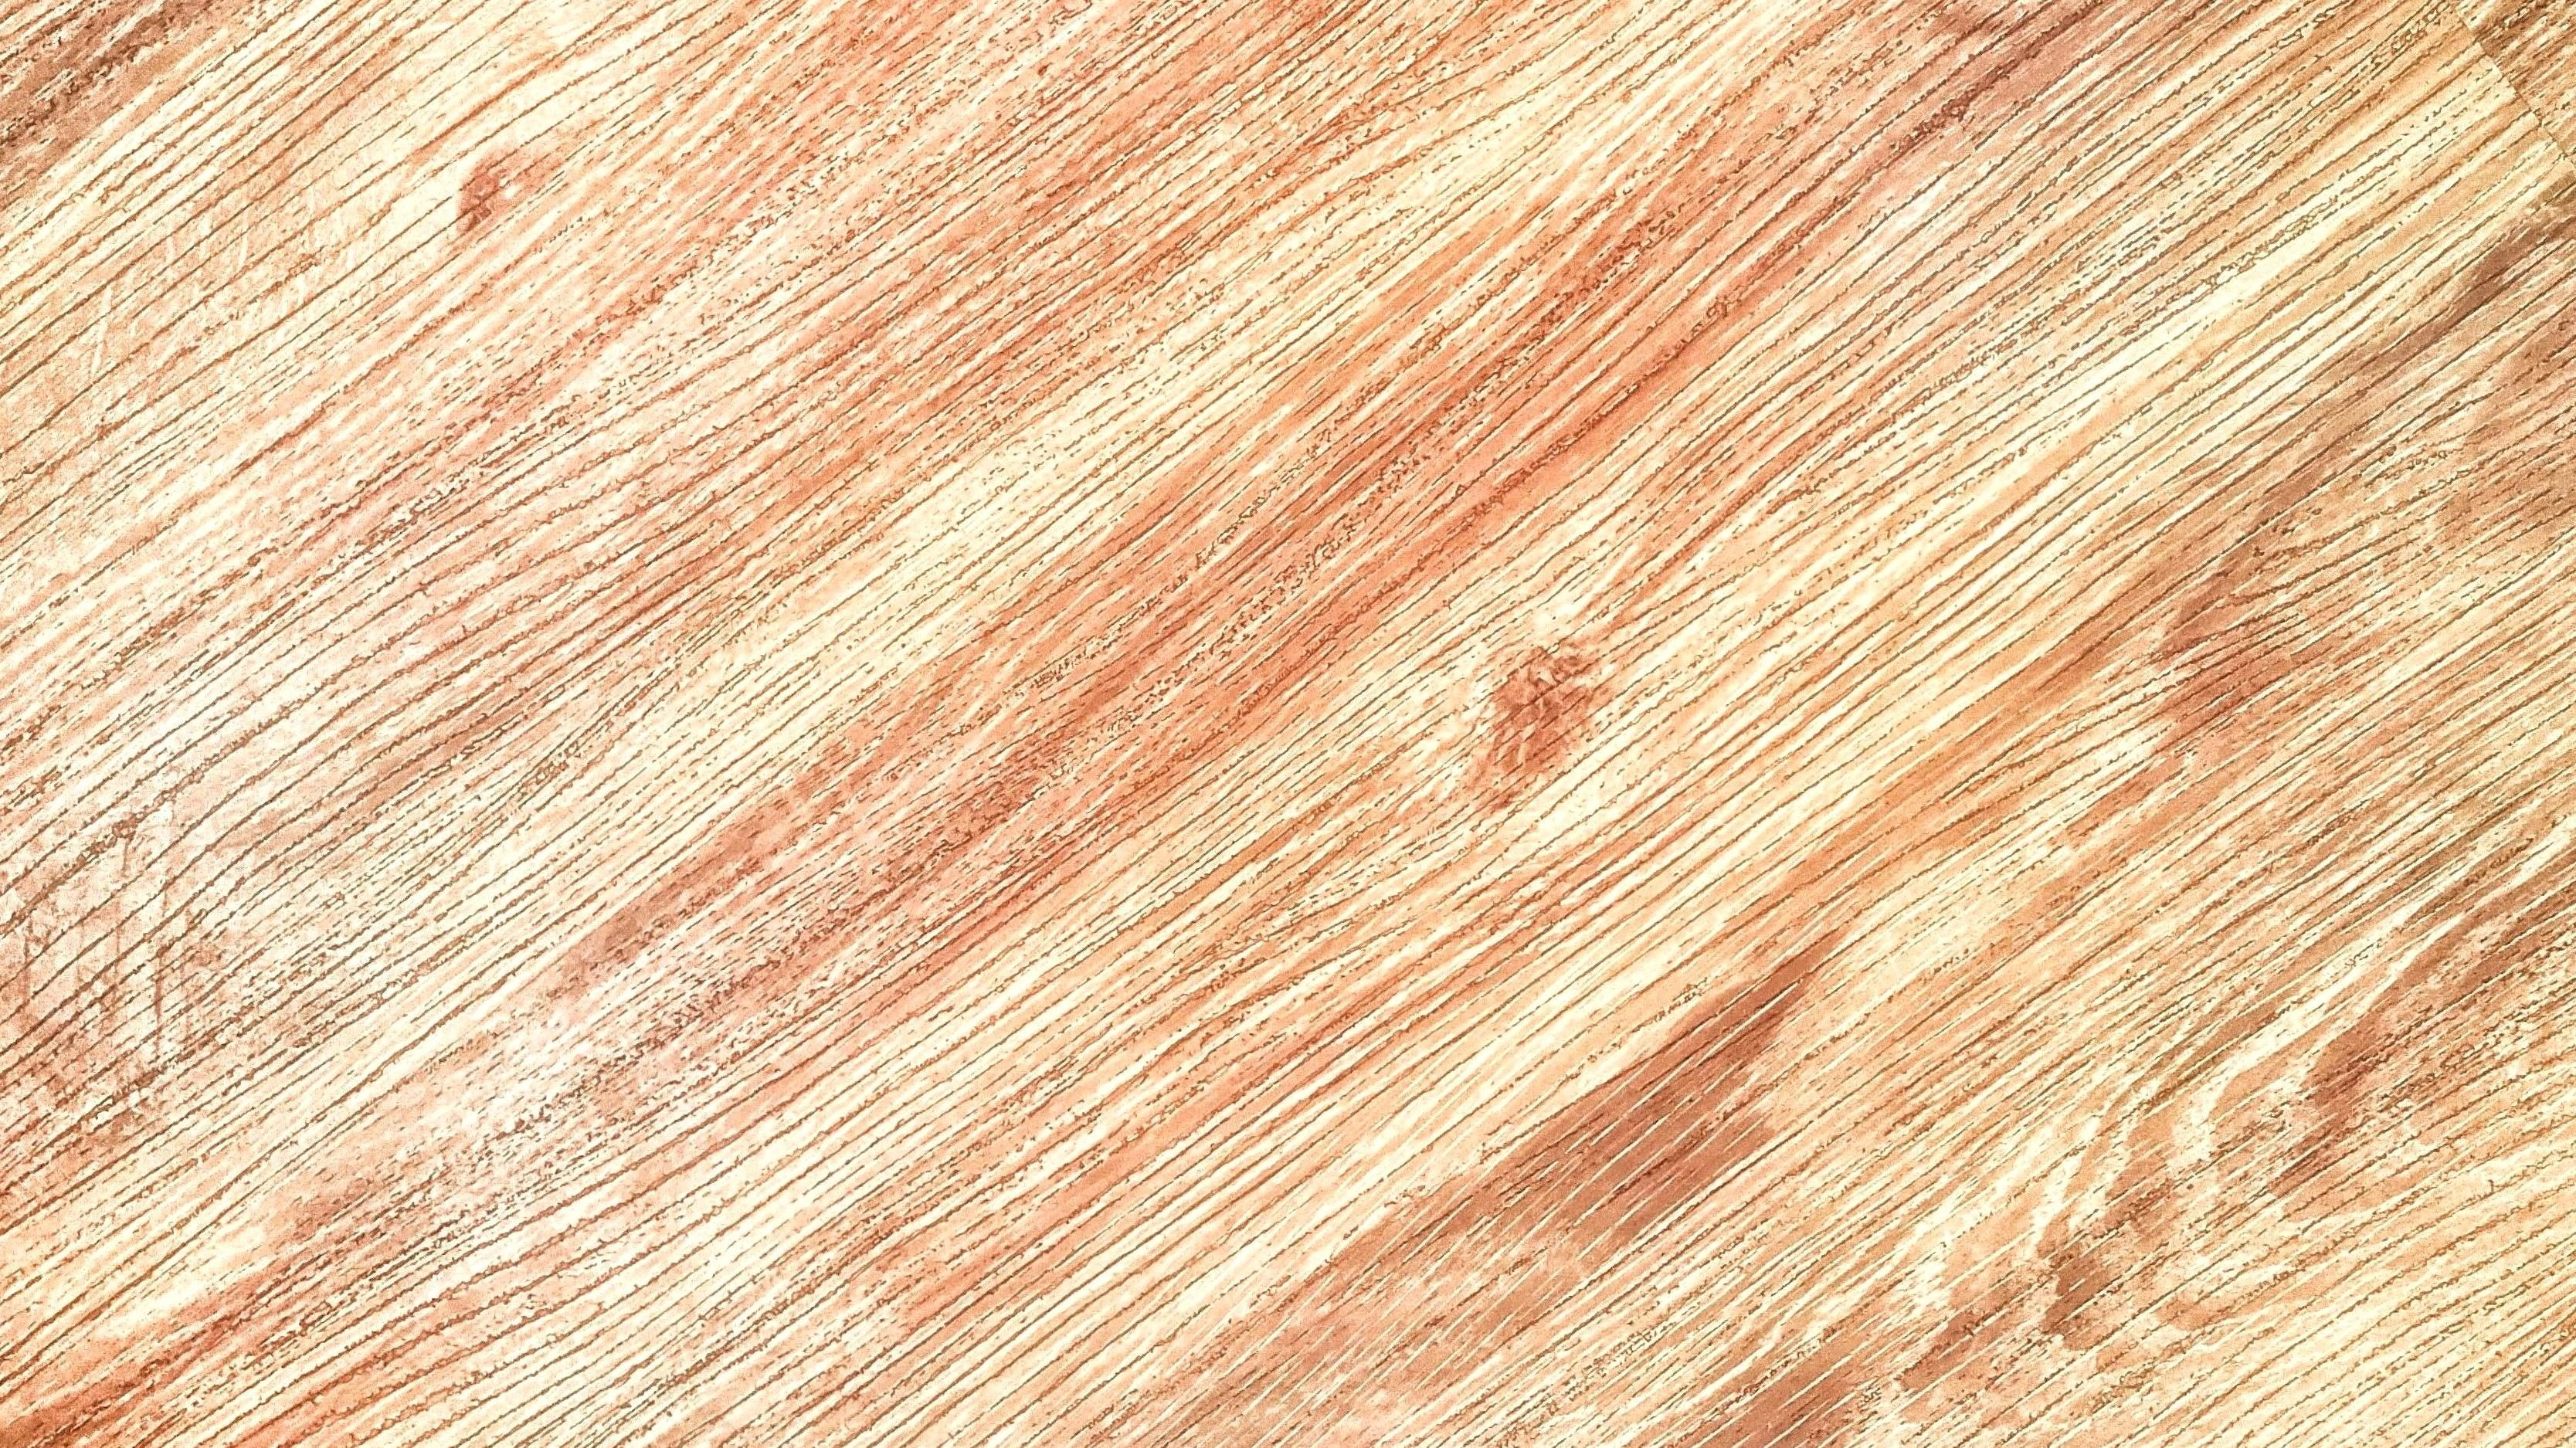 Free picture: light, wooden, texture, plank, brown